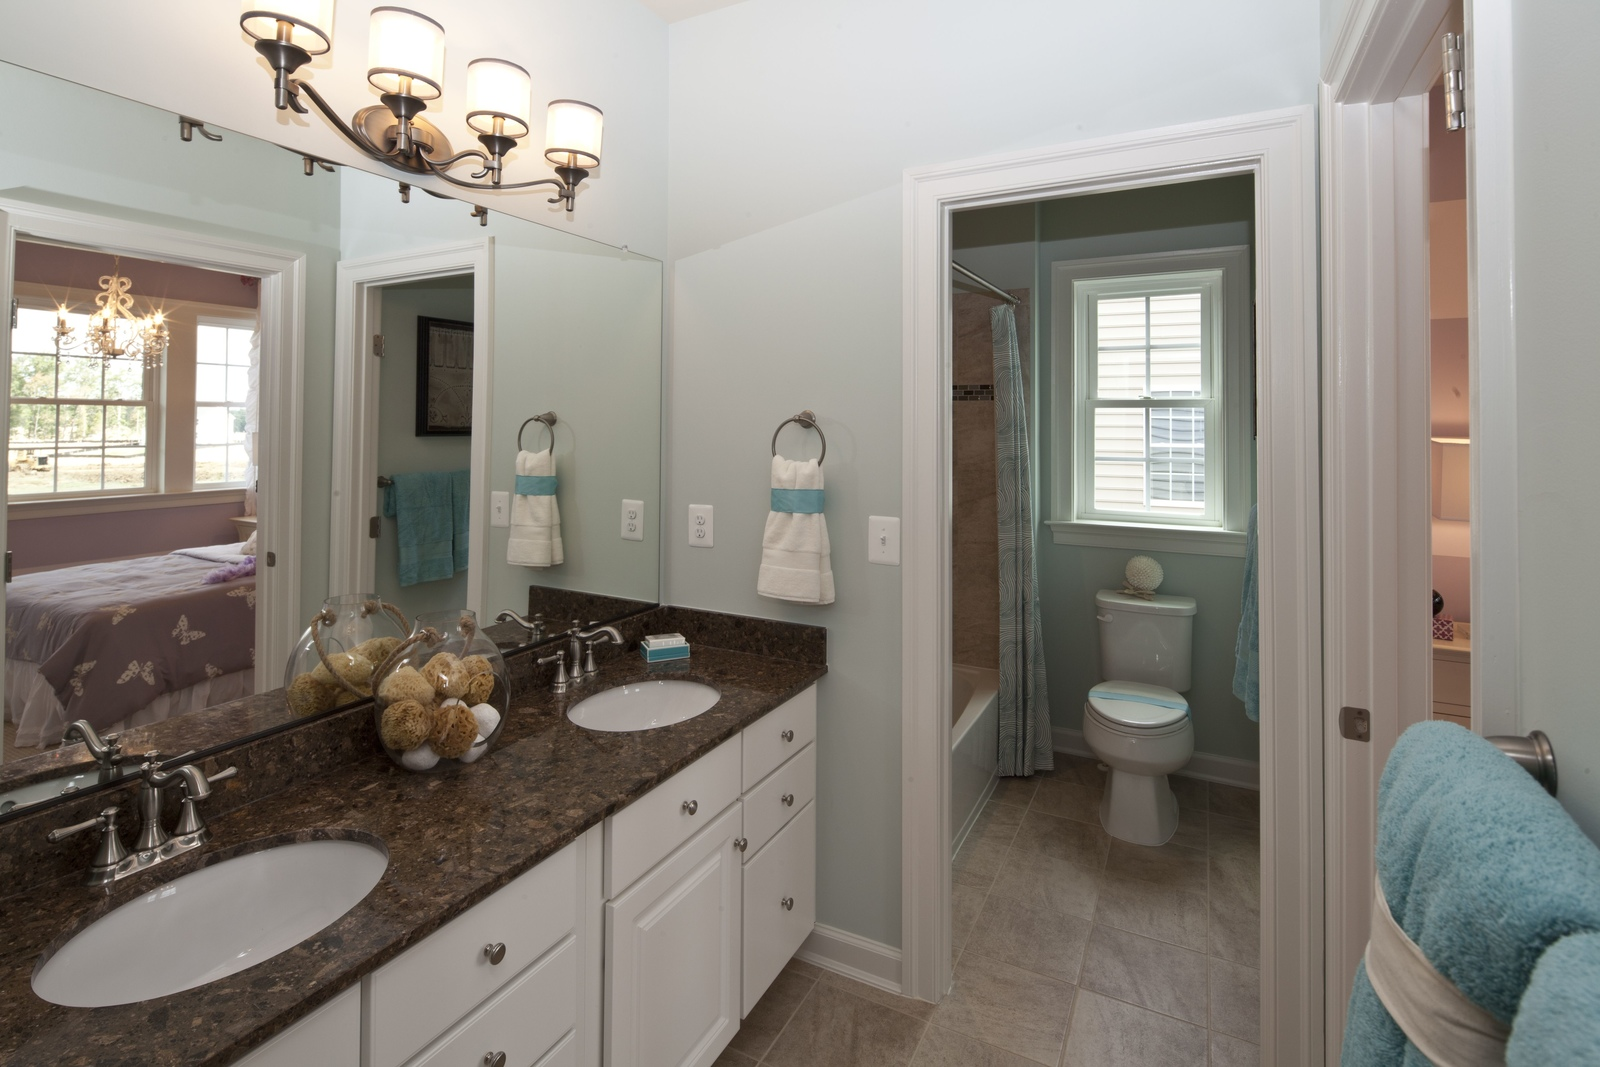 Personalize your bathroom to cater to your exact needs